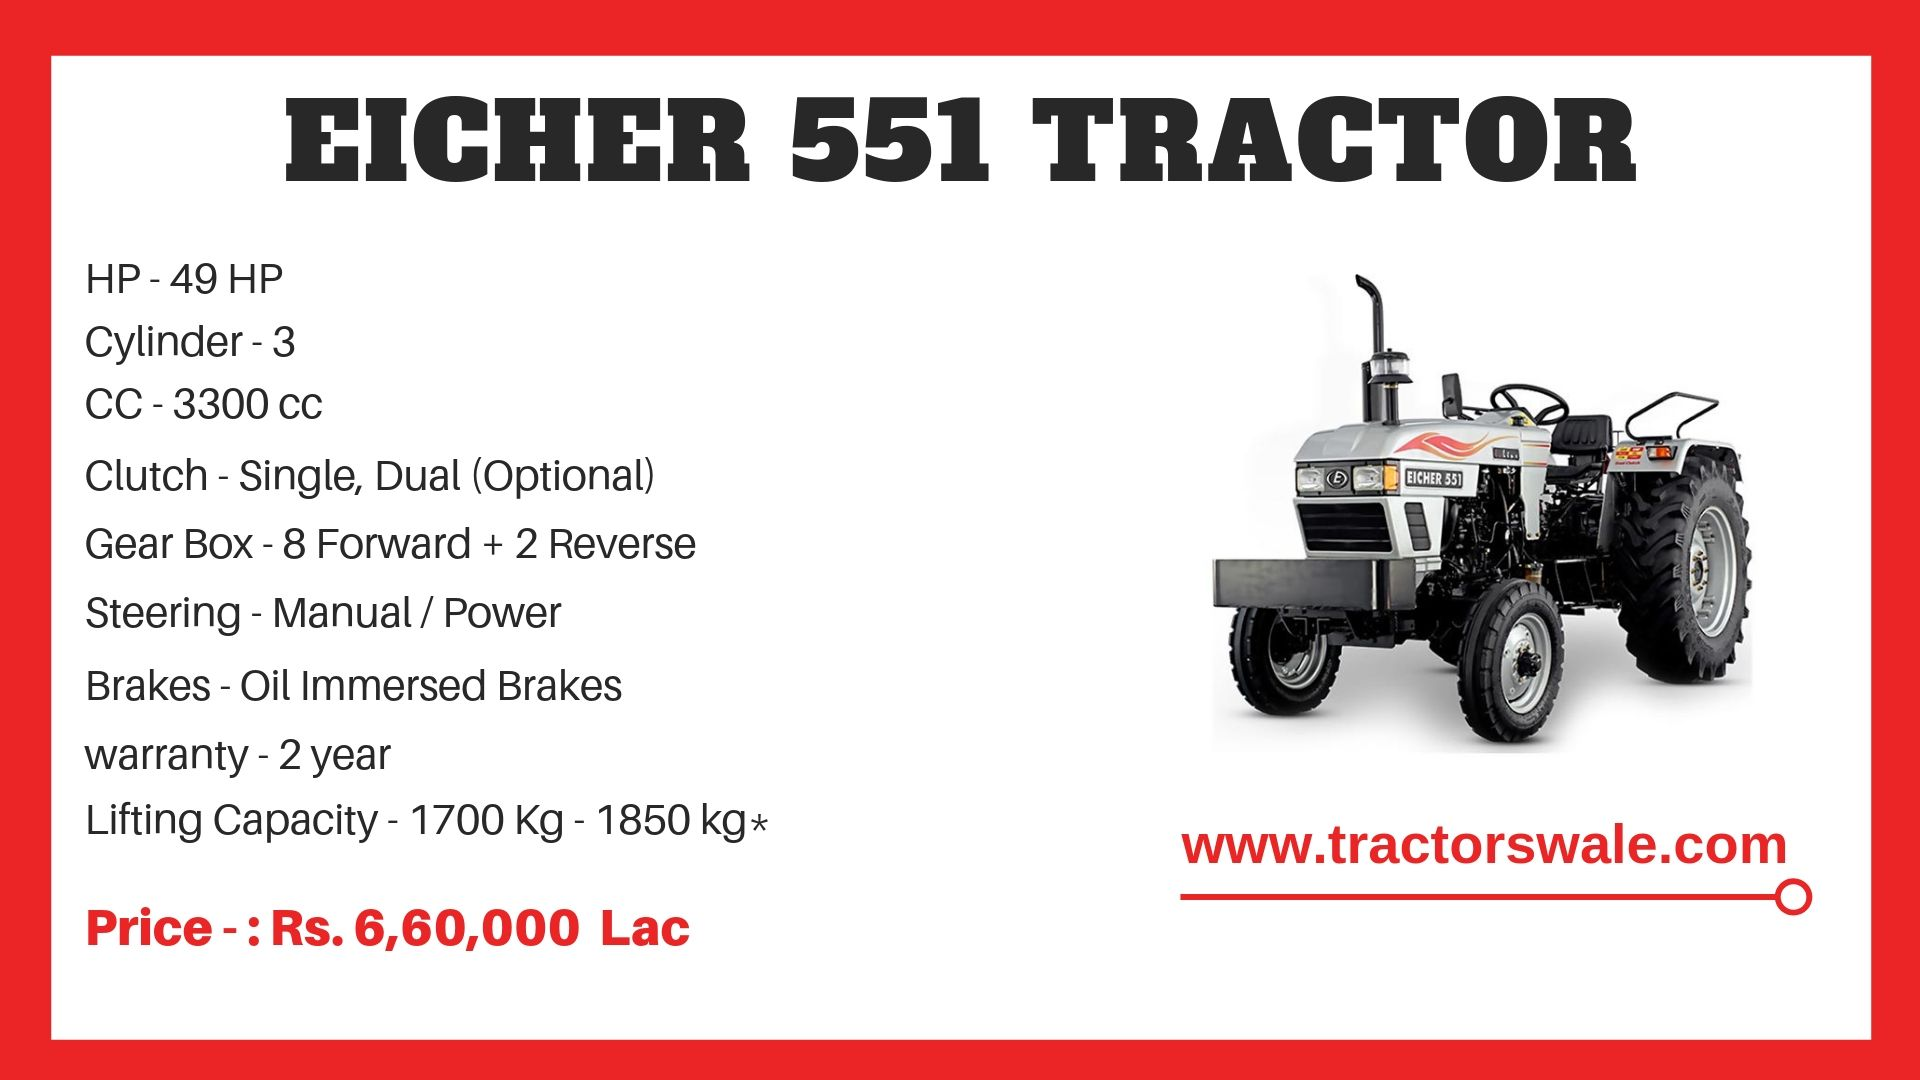 Eicher 551 Tractor Model Specifications